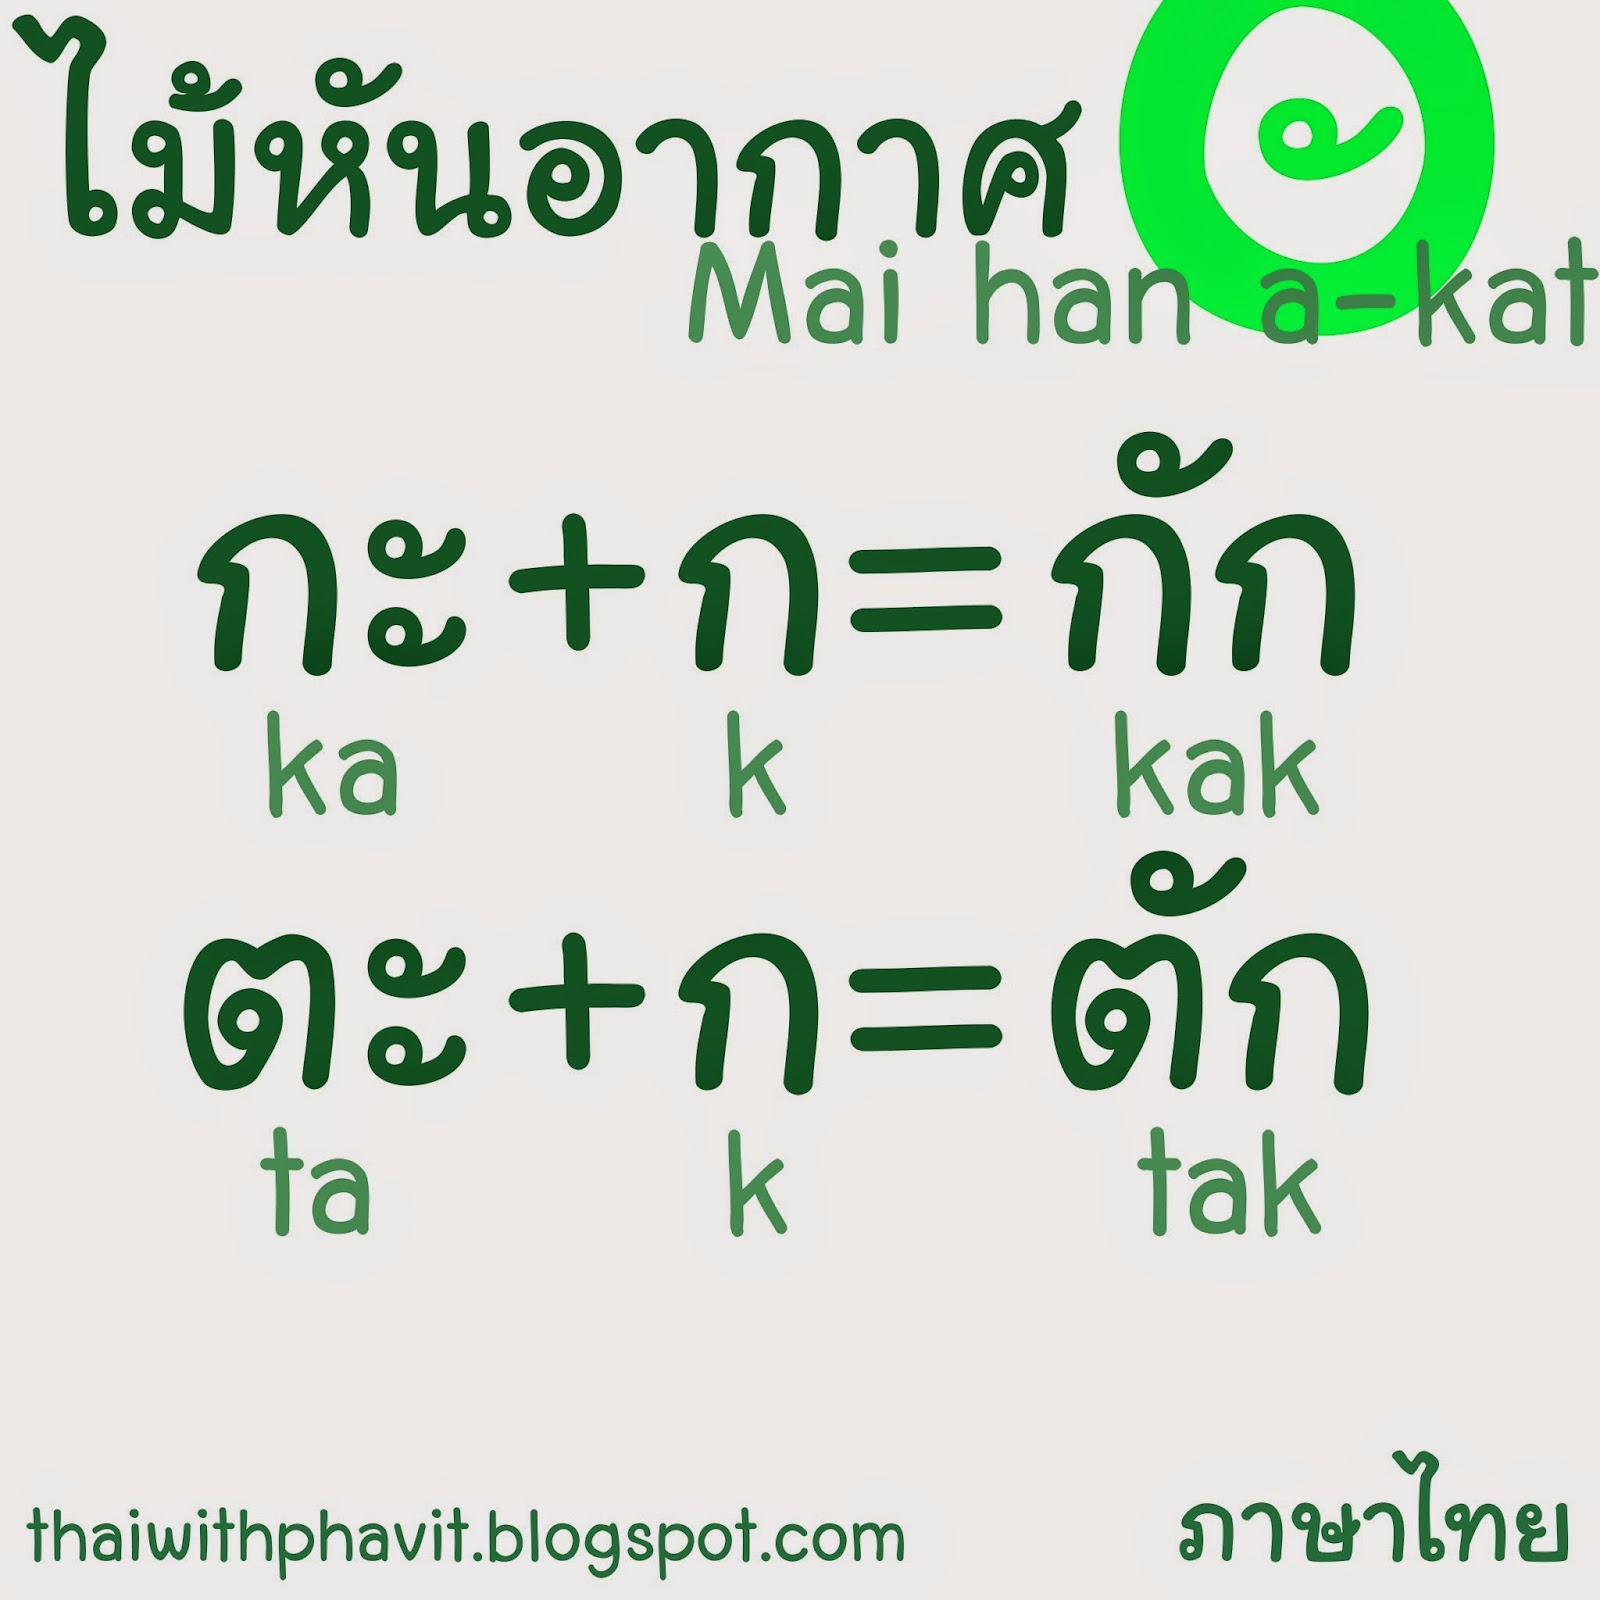 Thai alphabet the secret of mai han a kat m4hsunfo